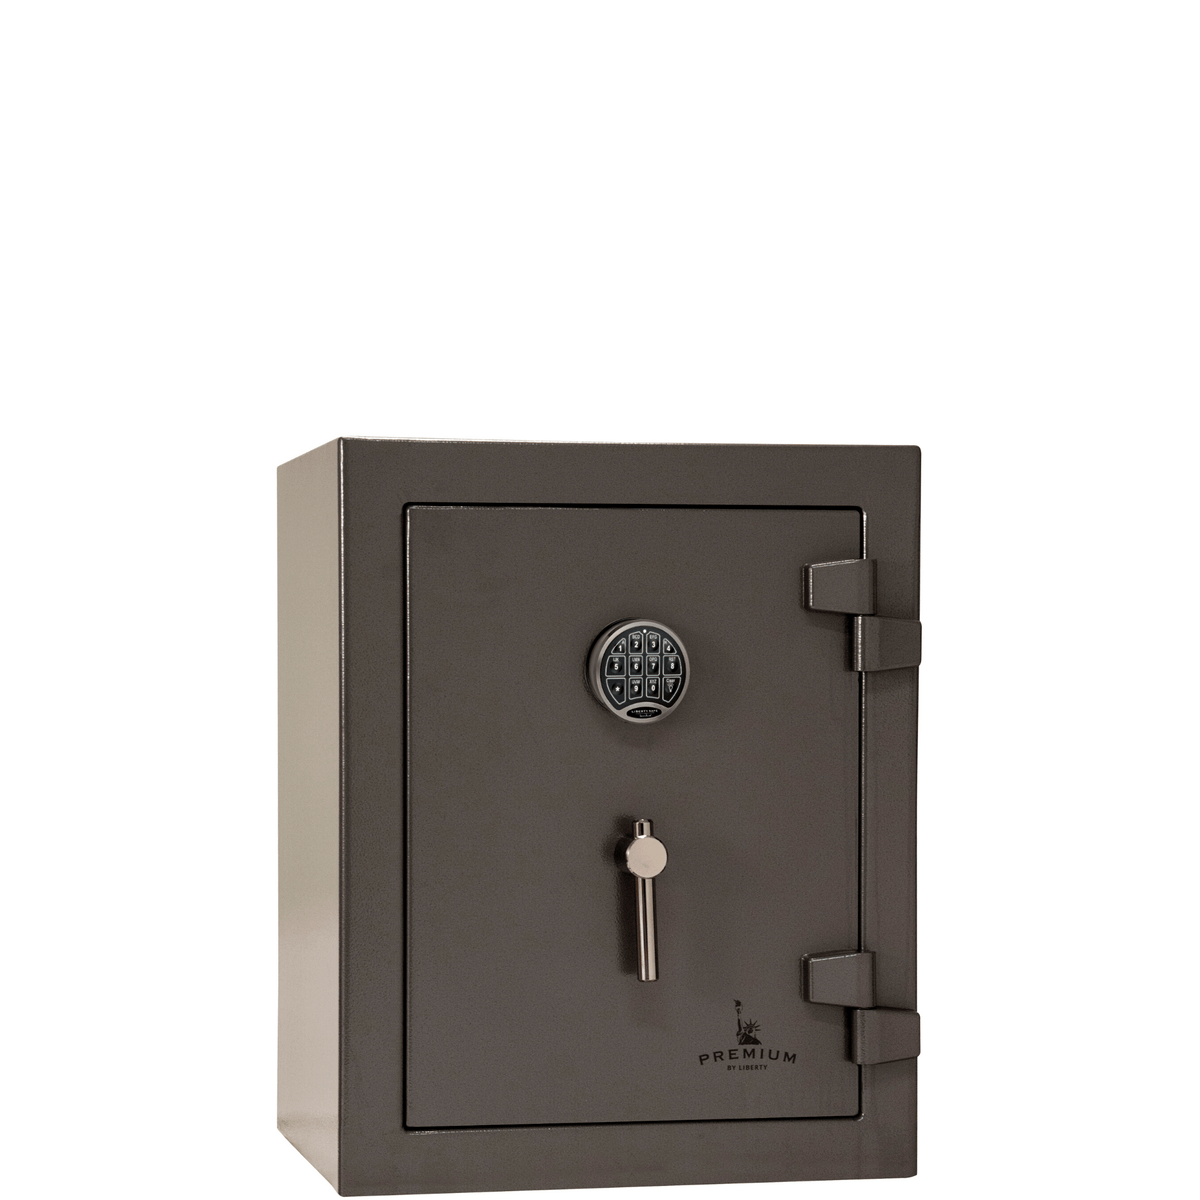 Premium Home Series | 90 Minute Fire Protection | Gray Marble | Electronic Lock